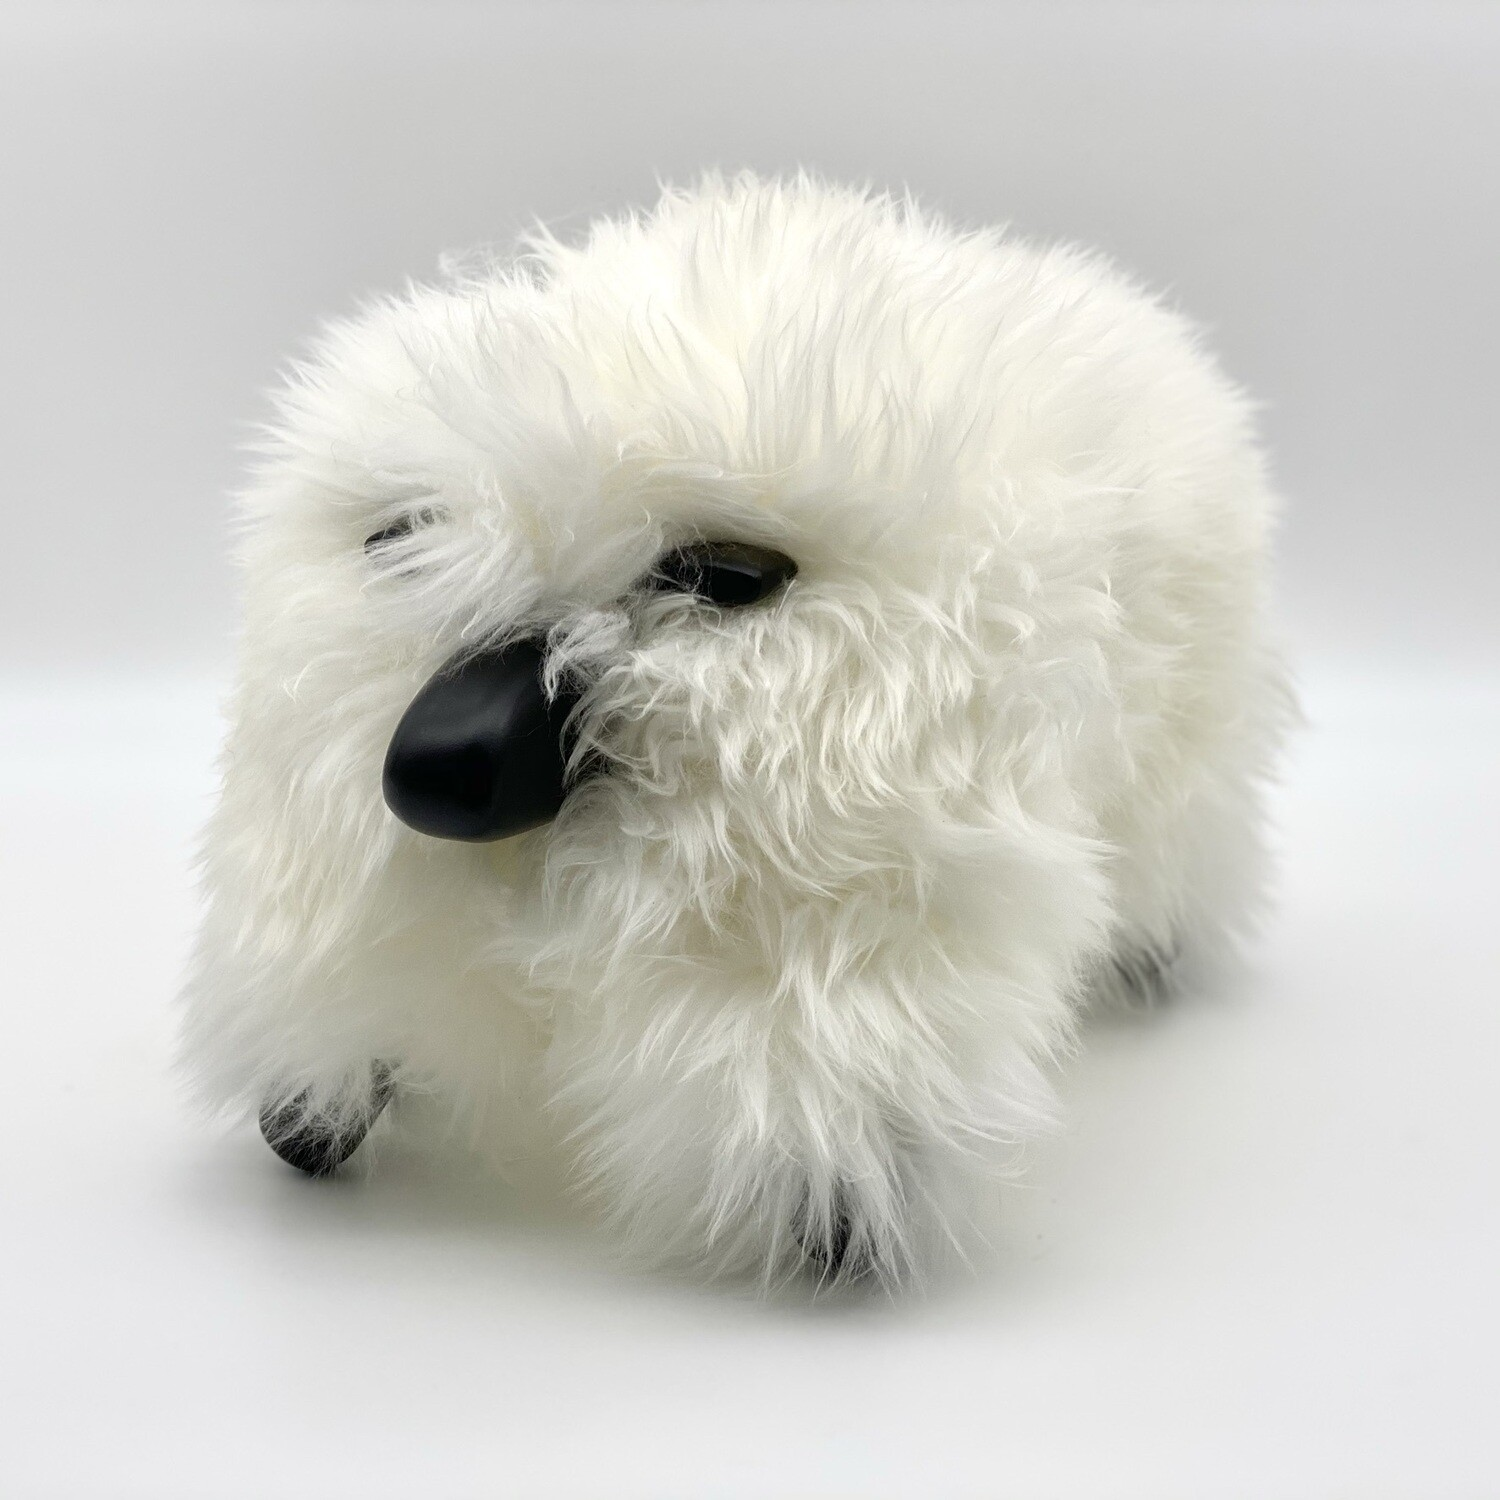 classic sheepPAL - white with black wood